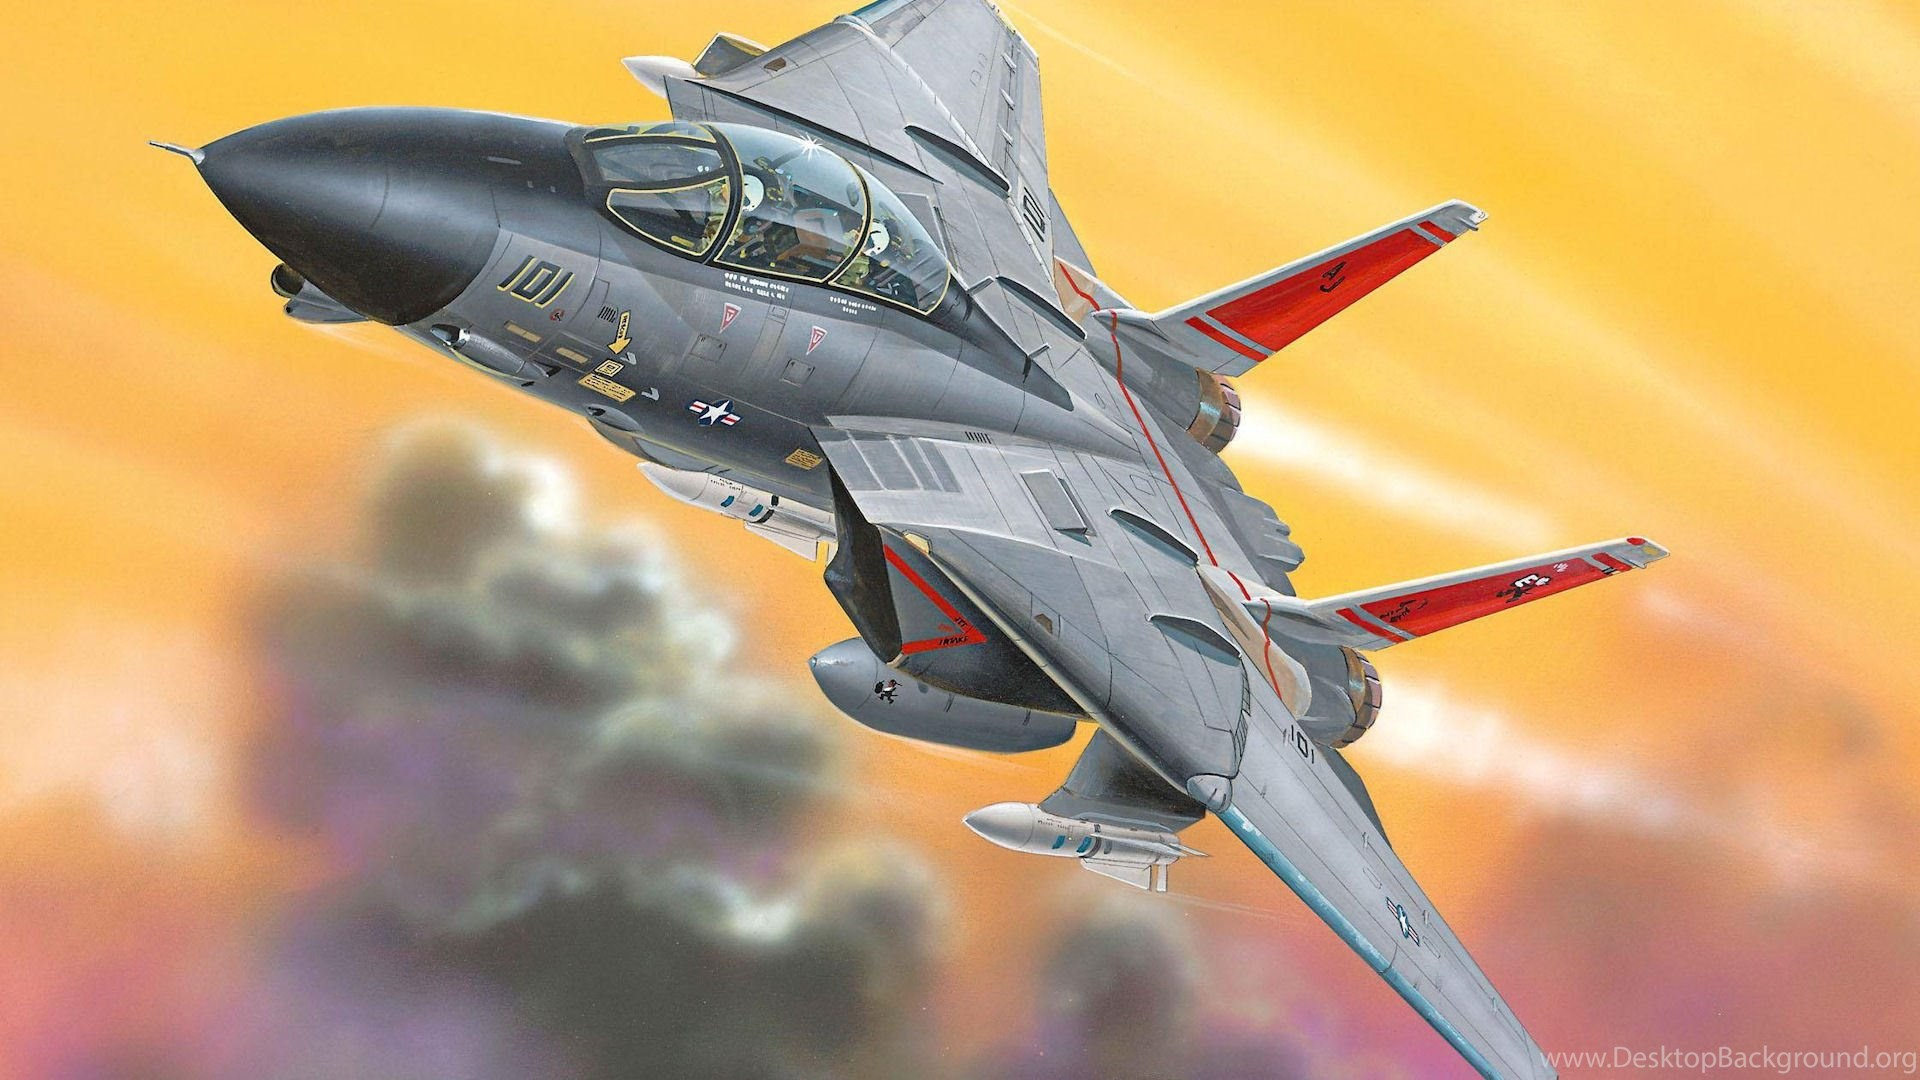 Grumman F 14 Tomcat Wallpapers Hd Download Desktop Background